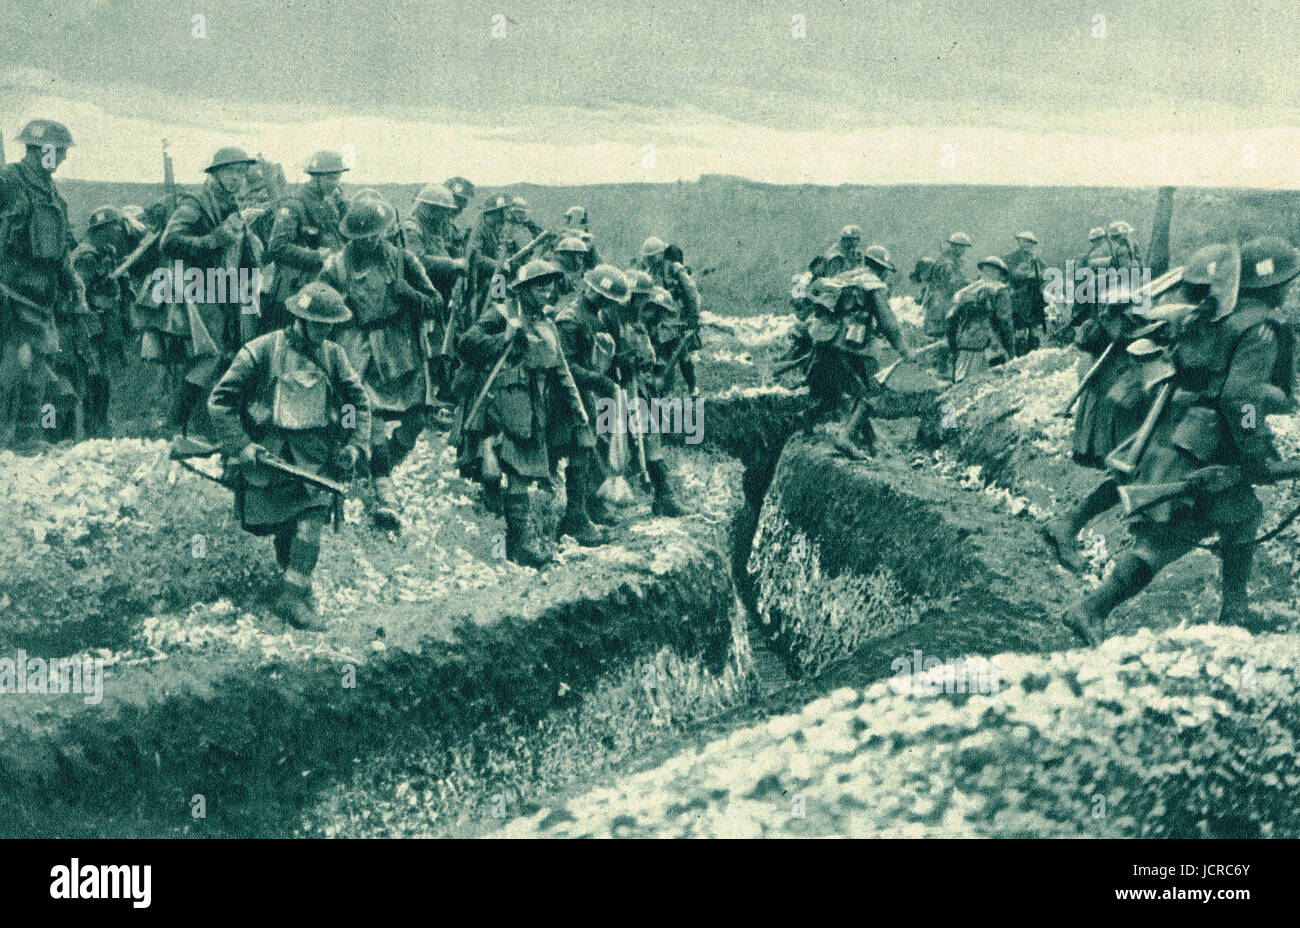 Highland territorials jumping German trenches, Cambra front, 1917 - Stock Image